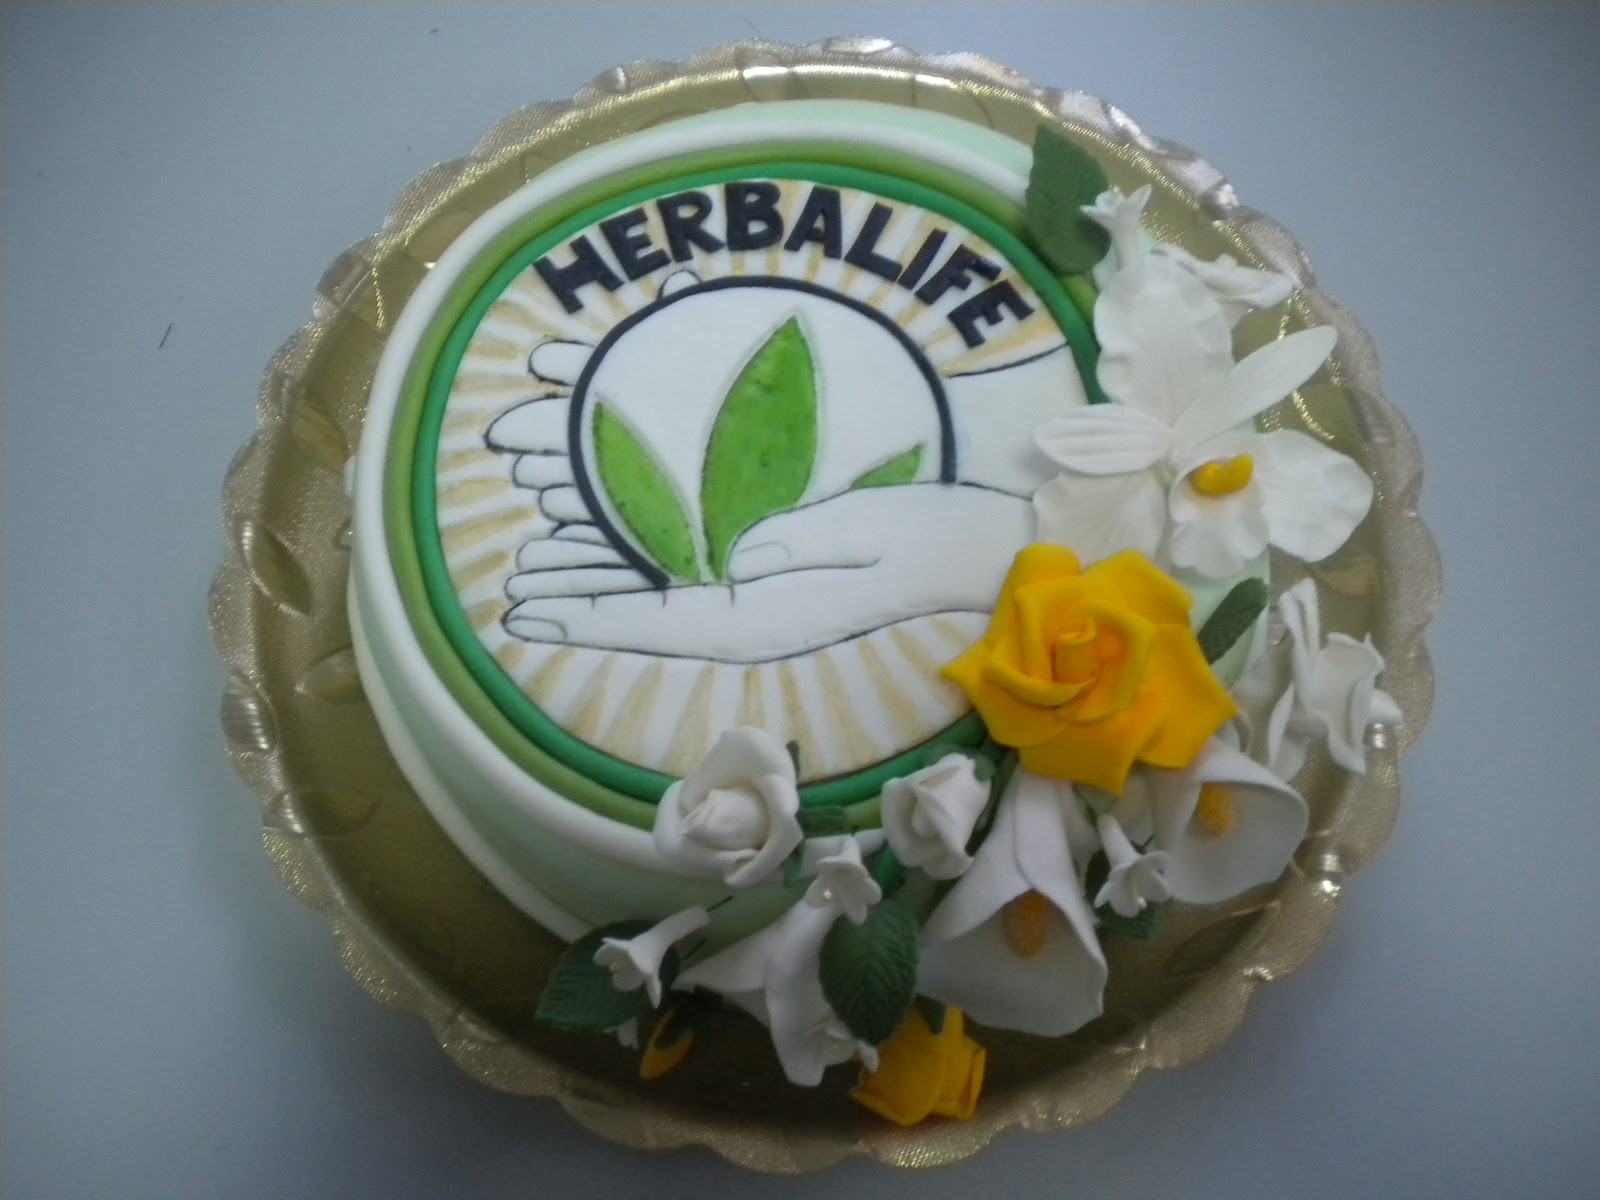 Herbalife Birthday Cake Cake Recipe